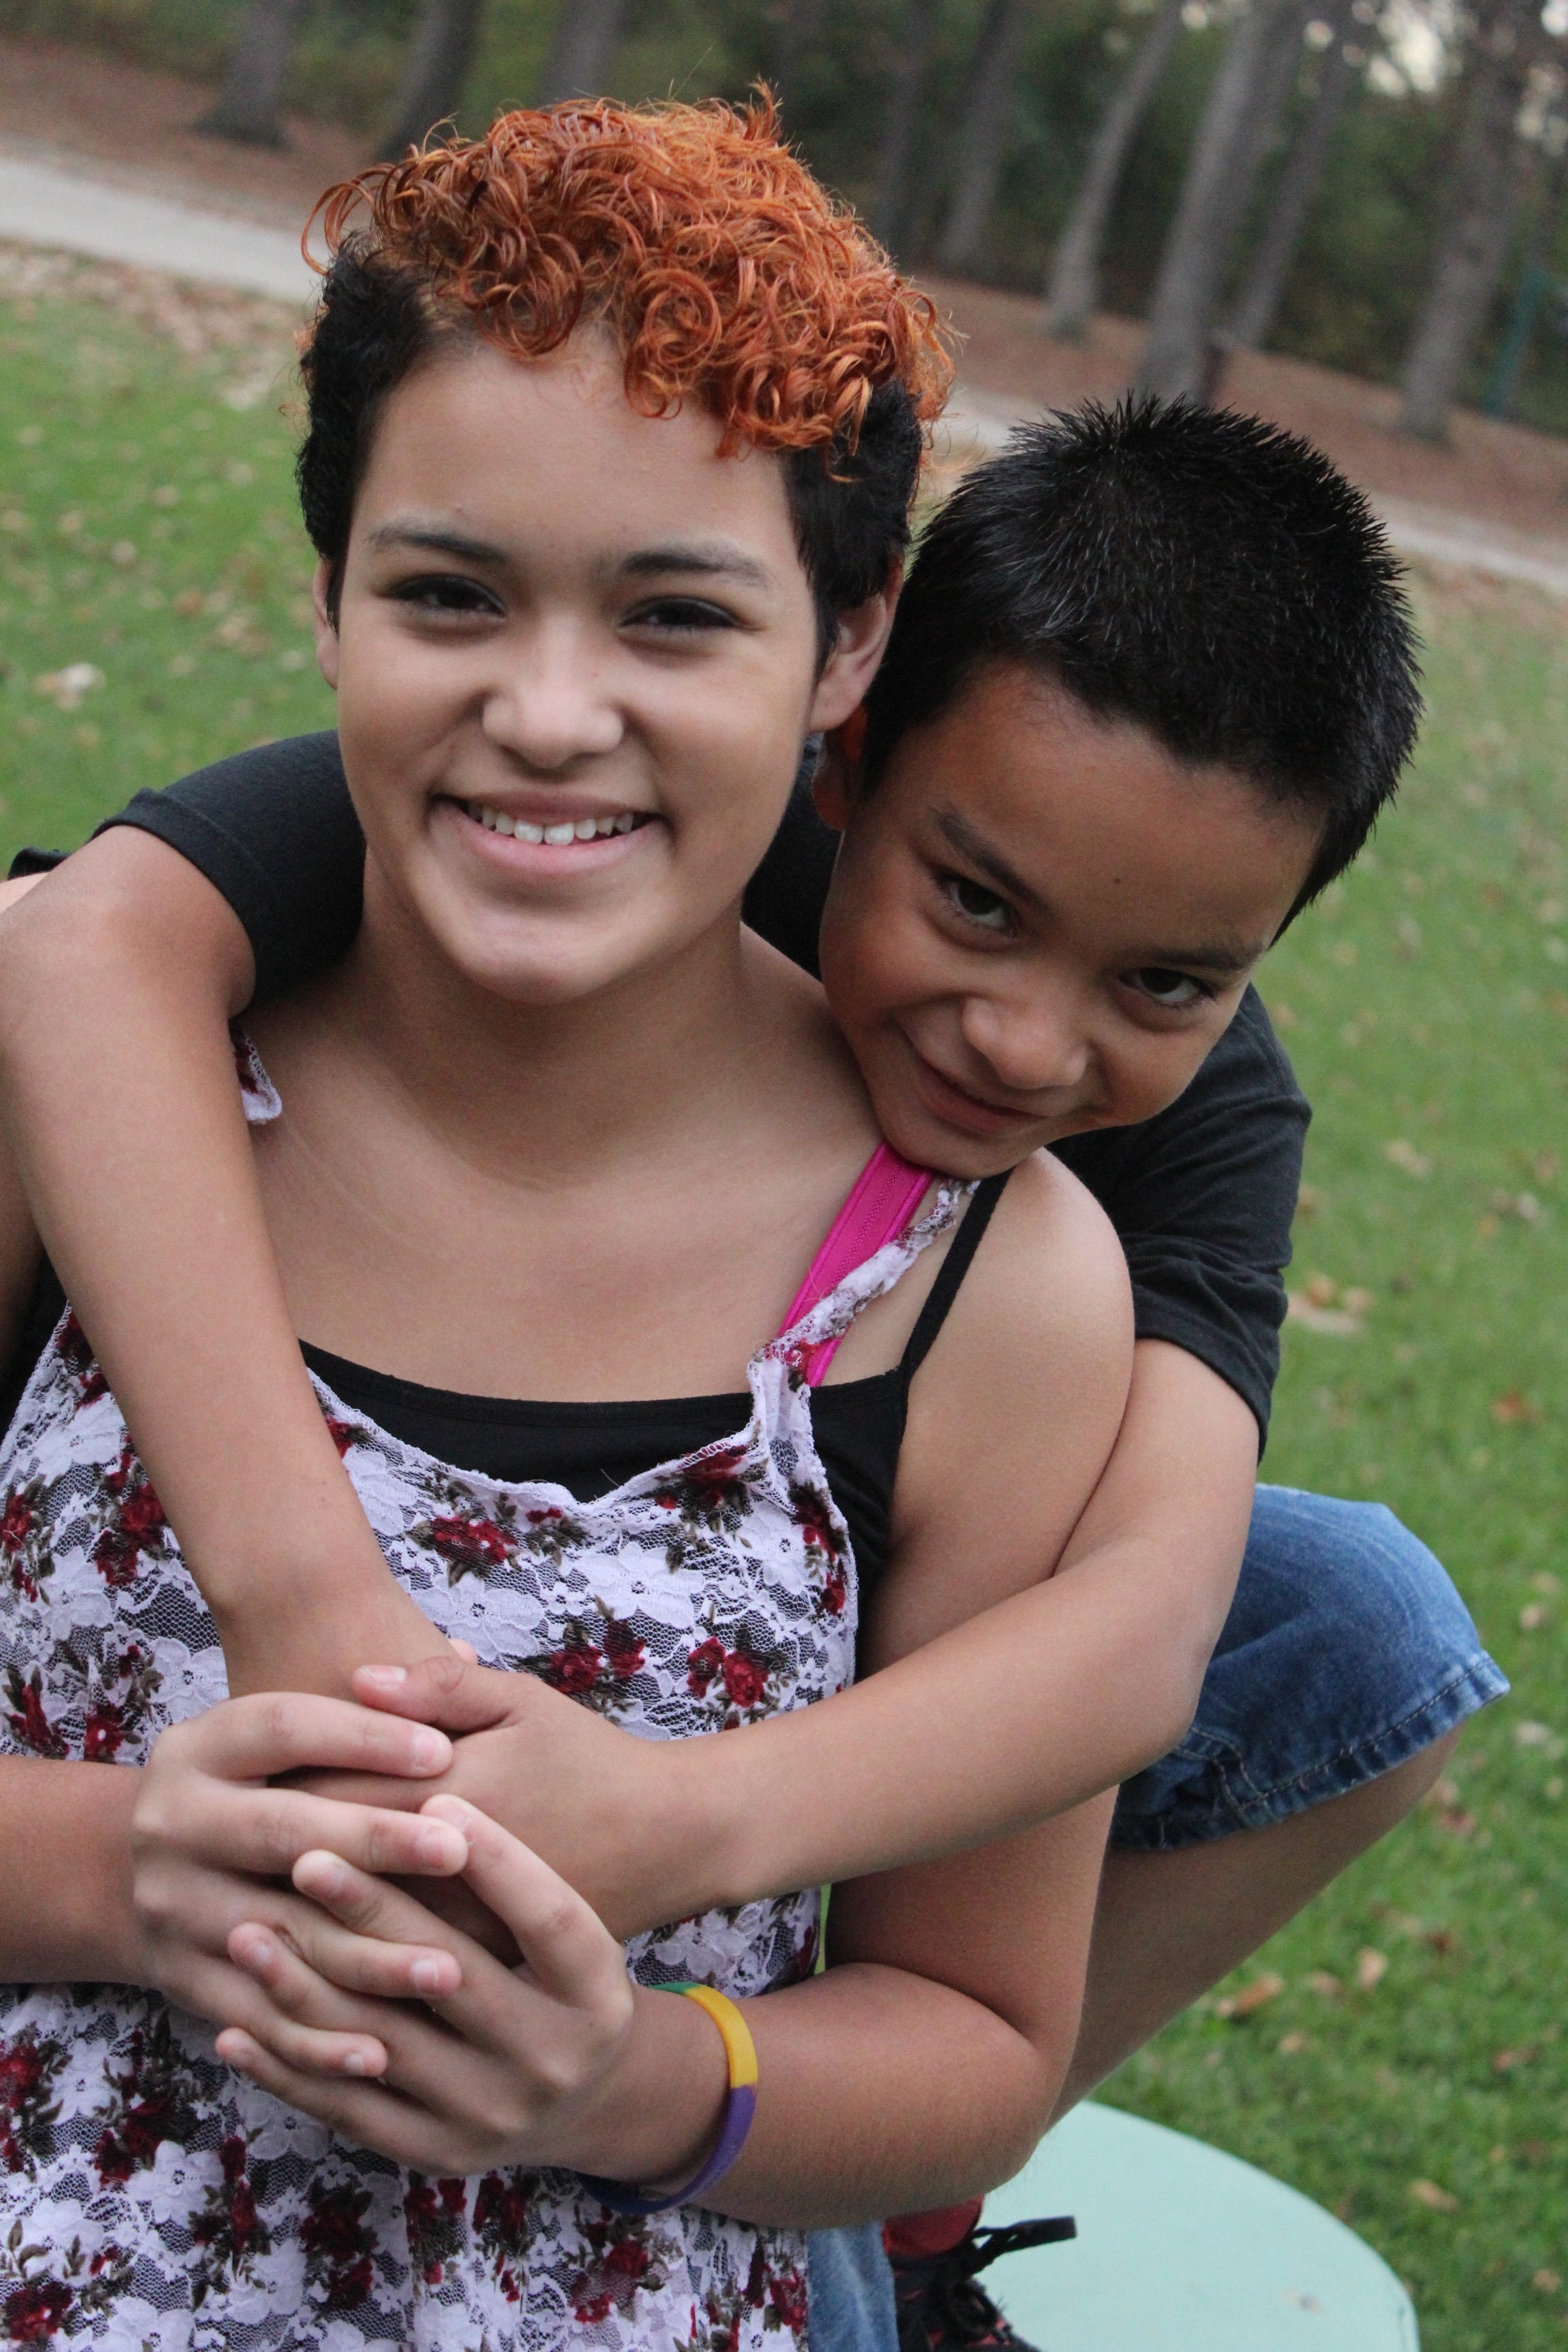 Maricella Chairez, 14, poses for photos with her brother Alejandro in July 2015.